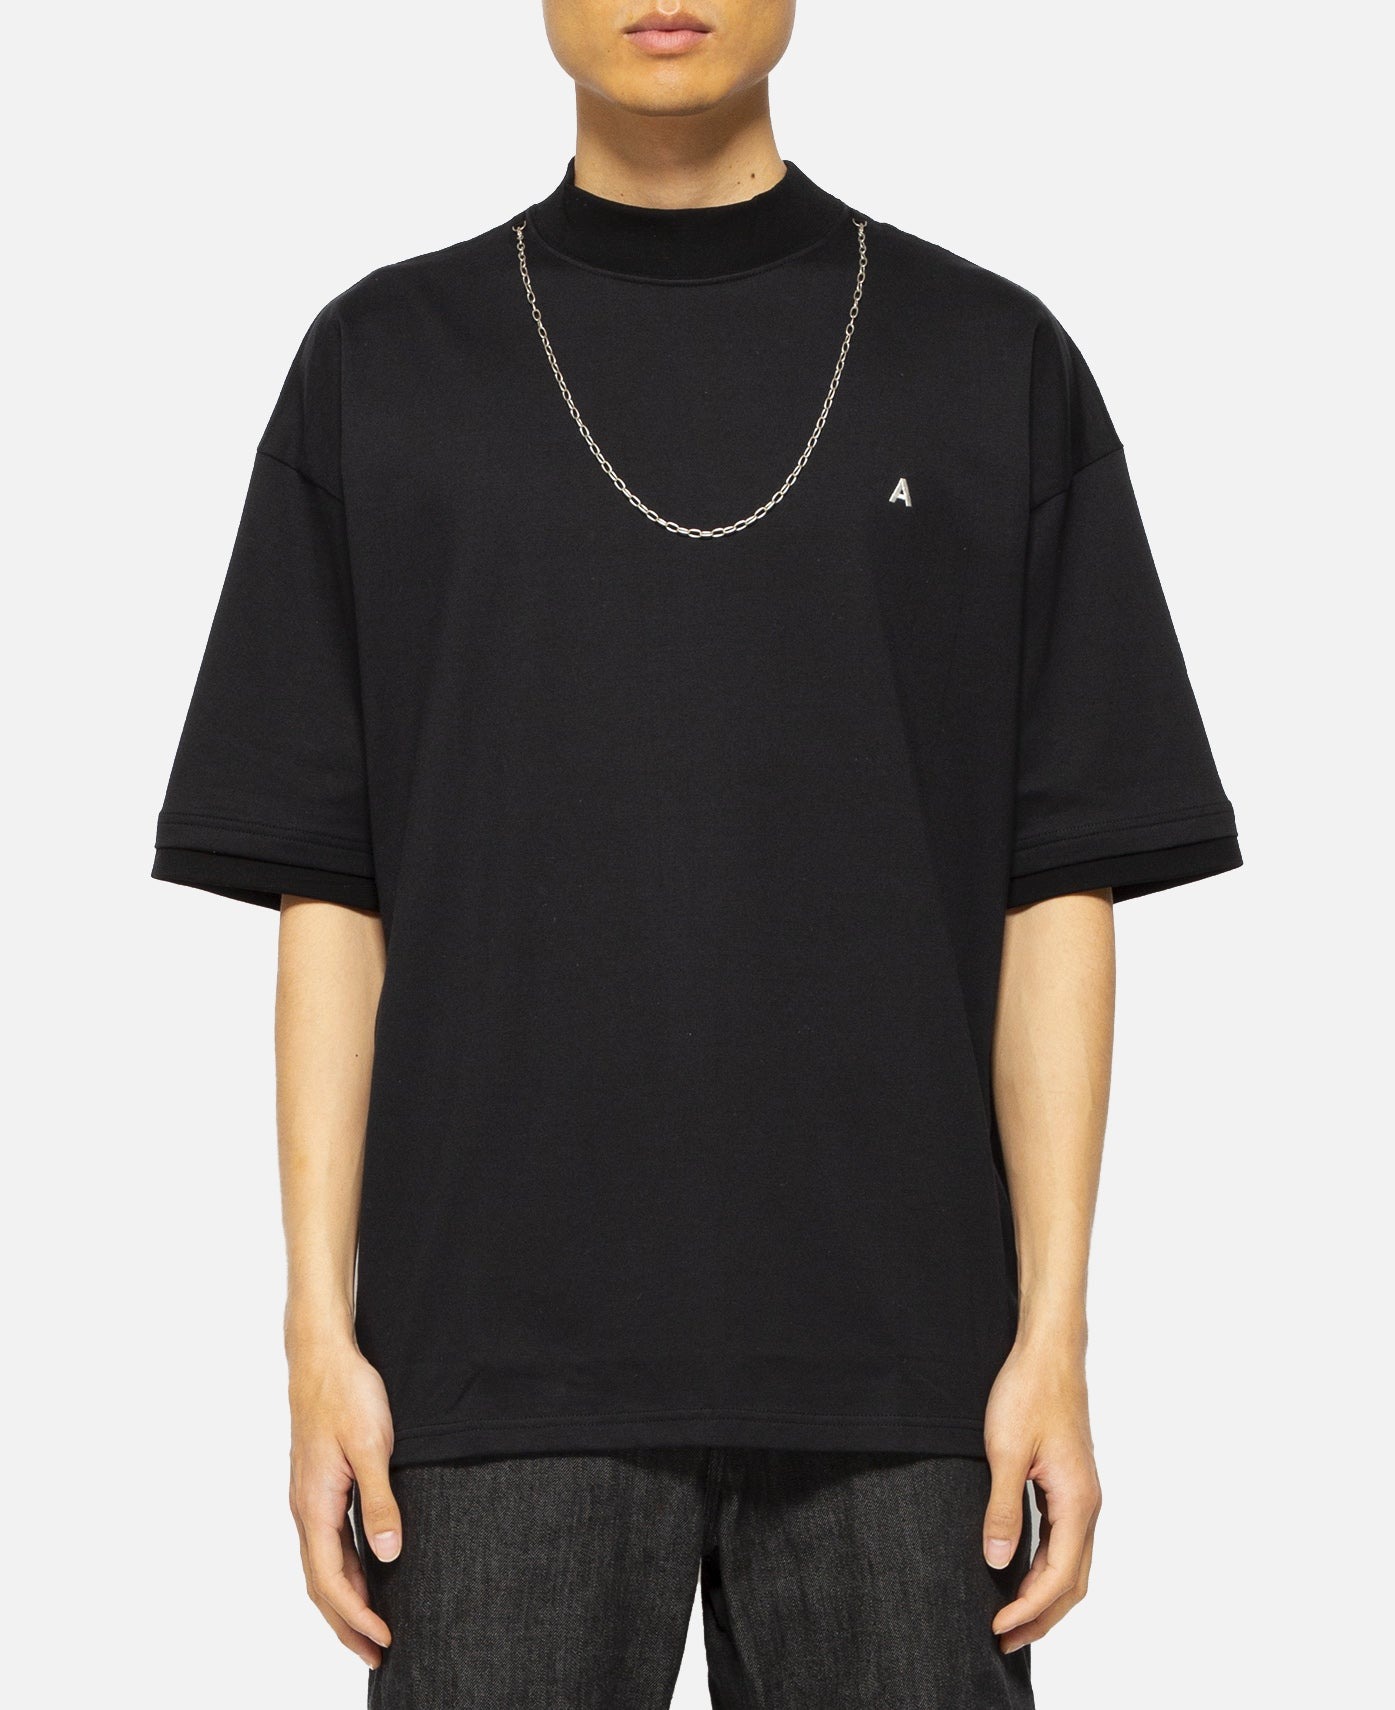 New Chain T-Shirt (Black)